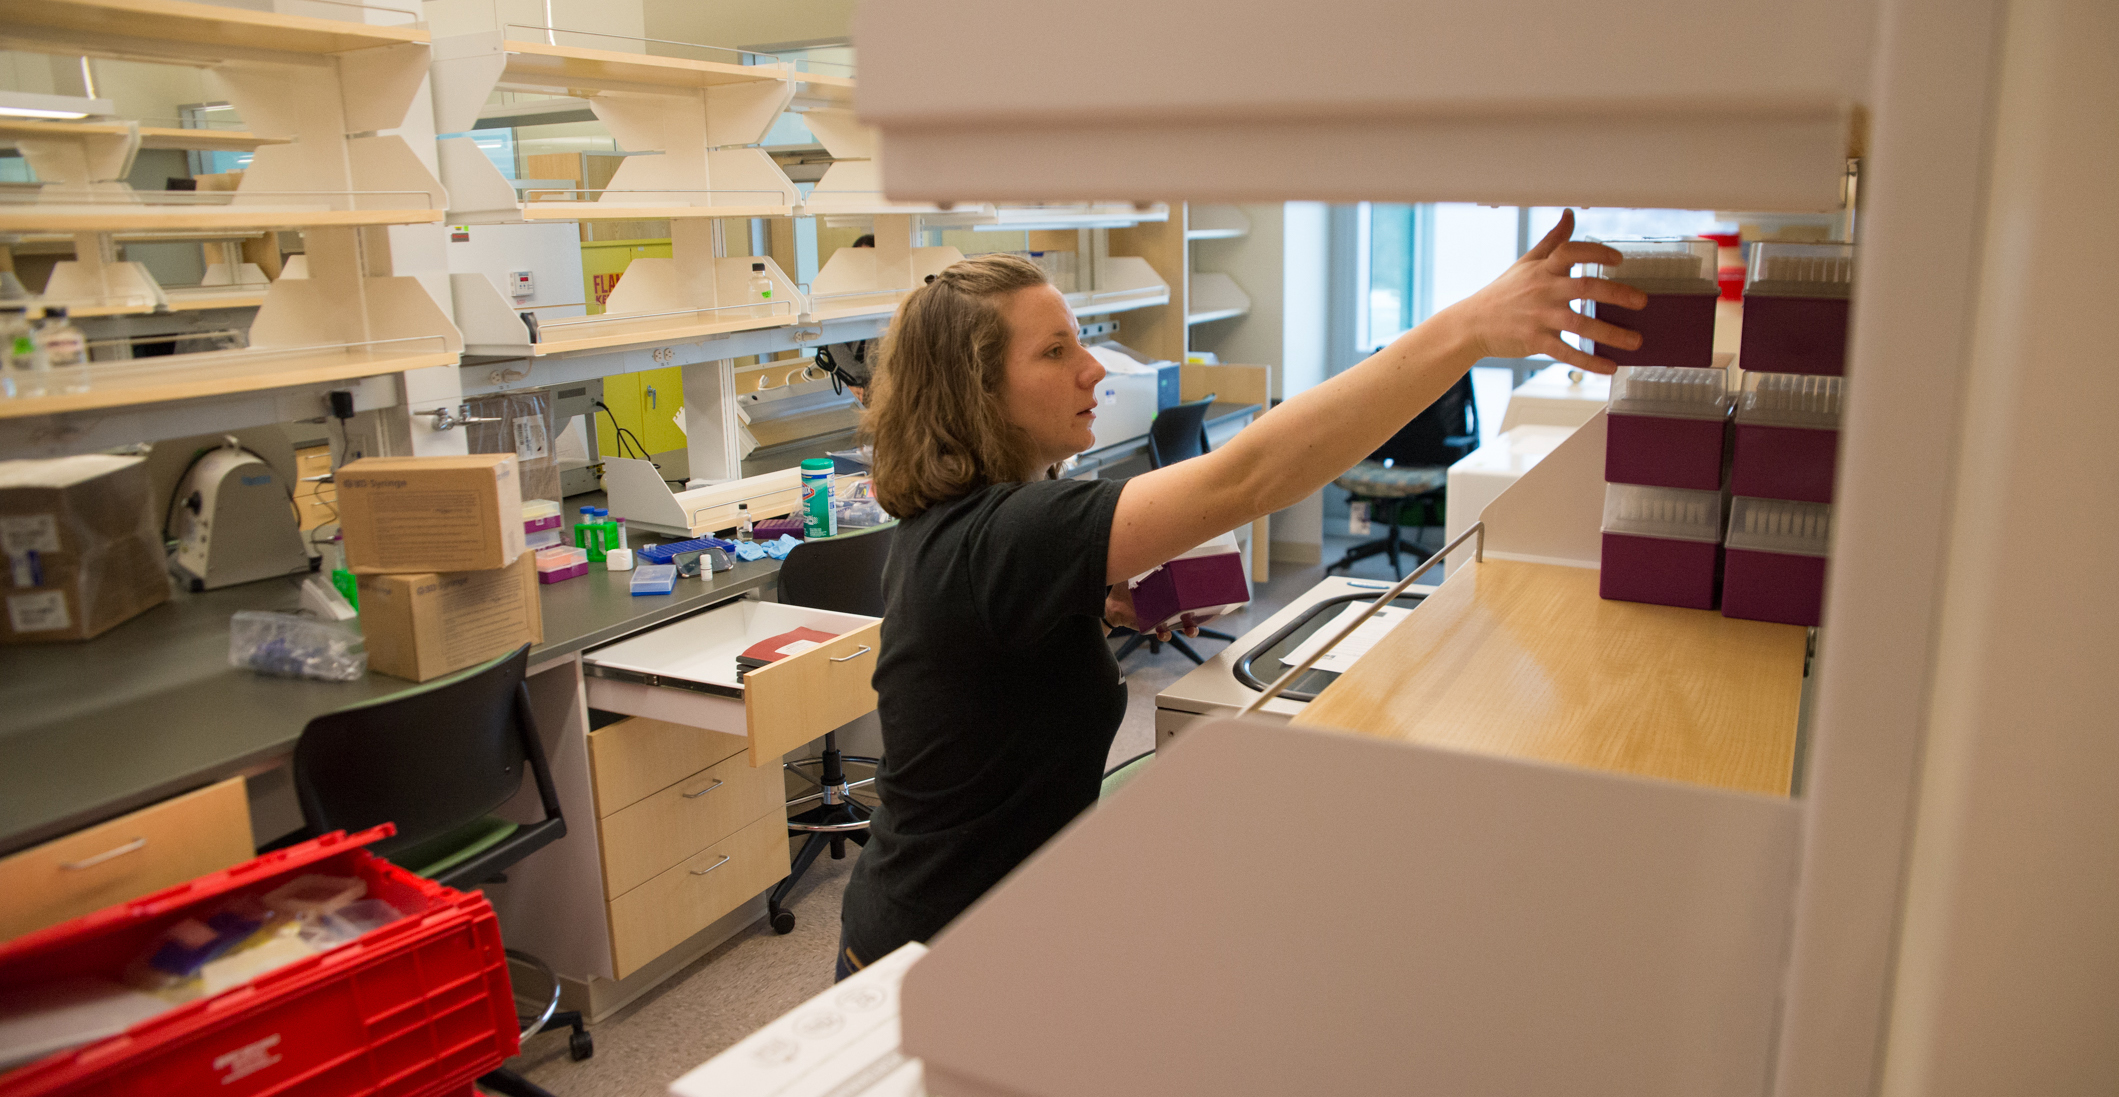 PhD student Jamie Dombach sets up her lab space